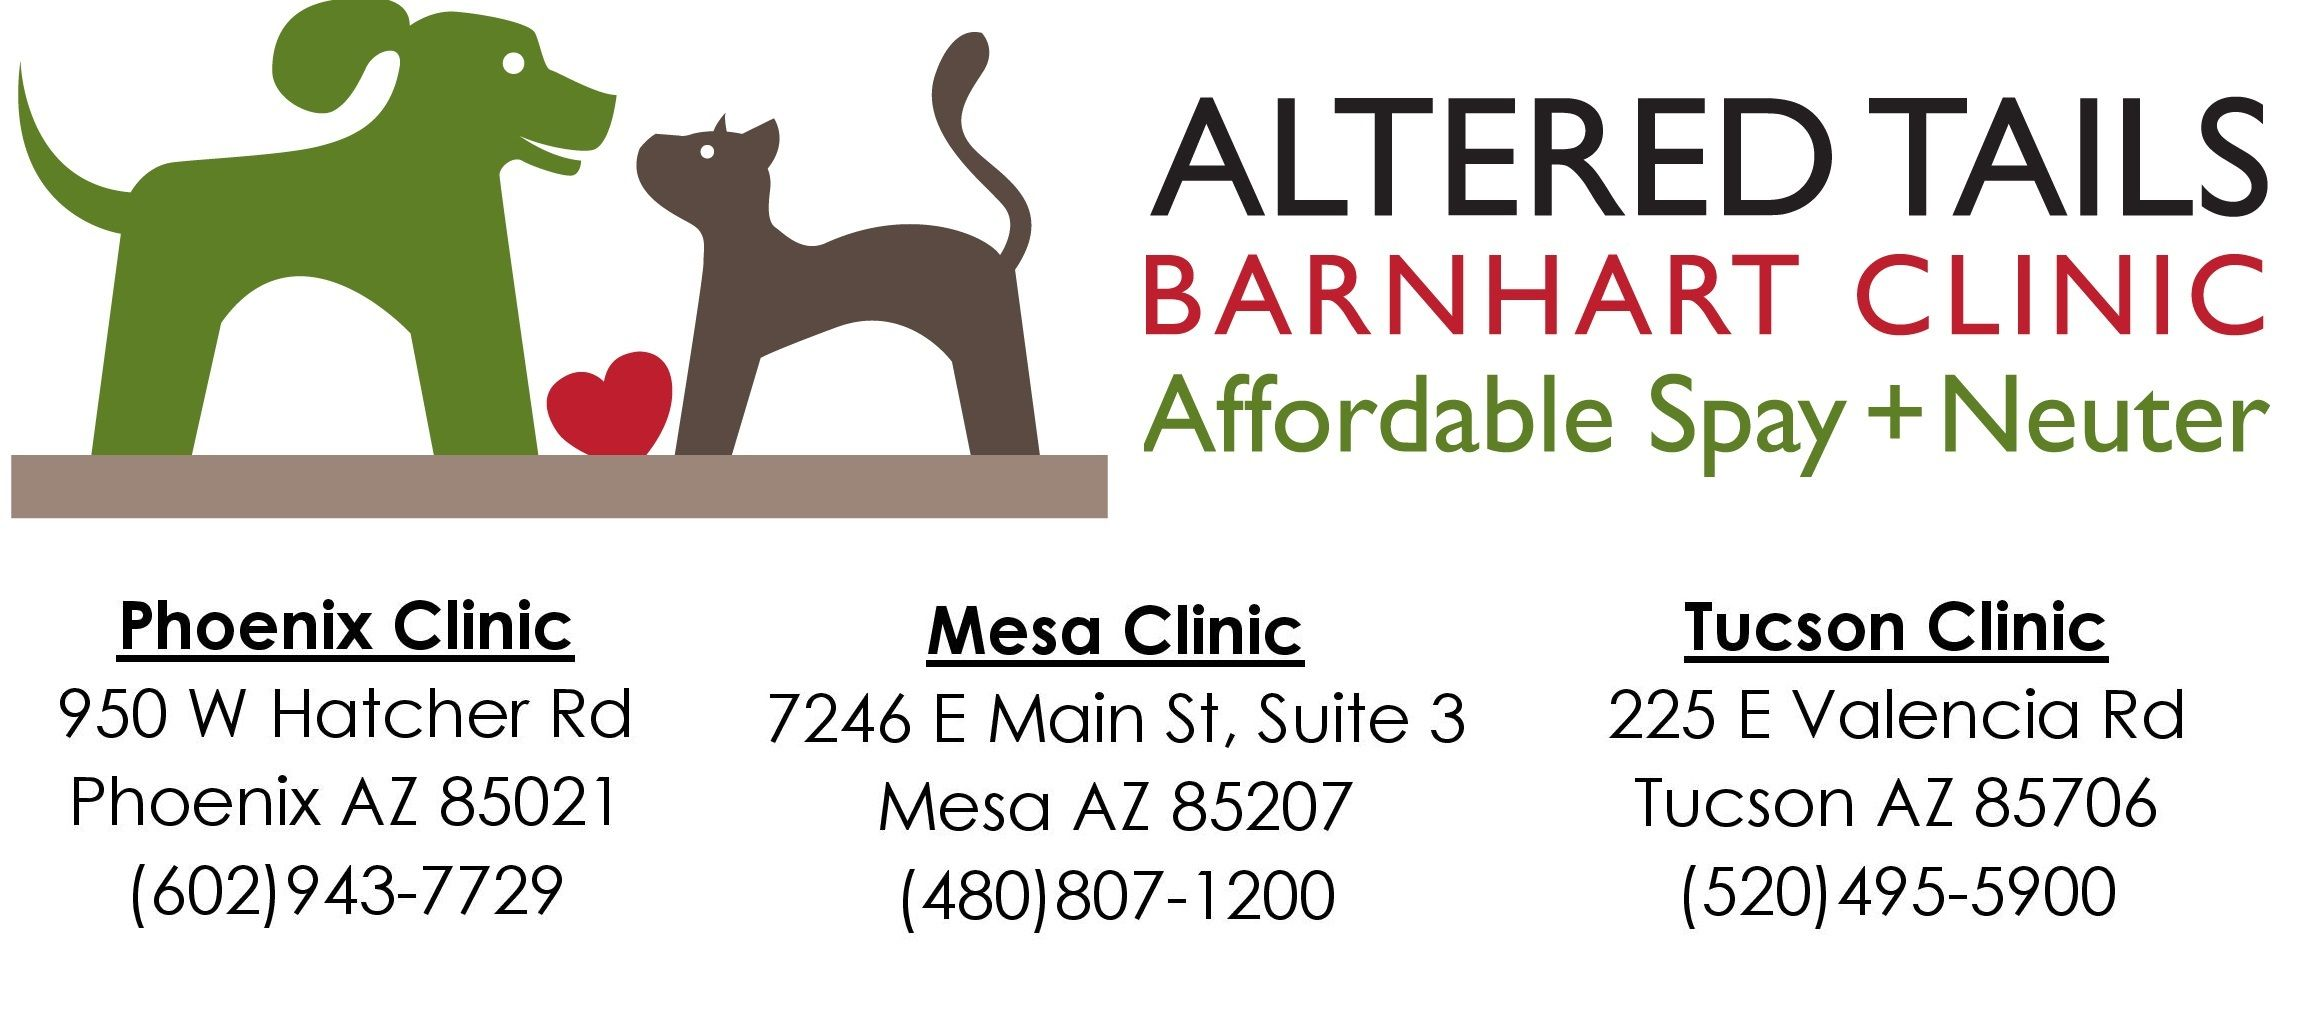 Services Online scheduling, Clinic, Pet care